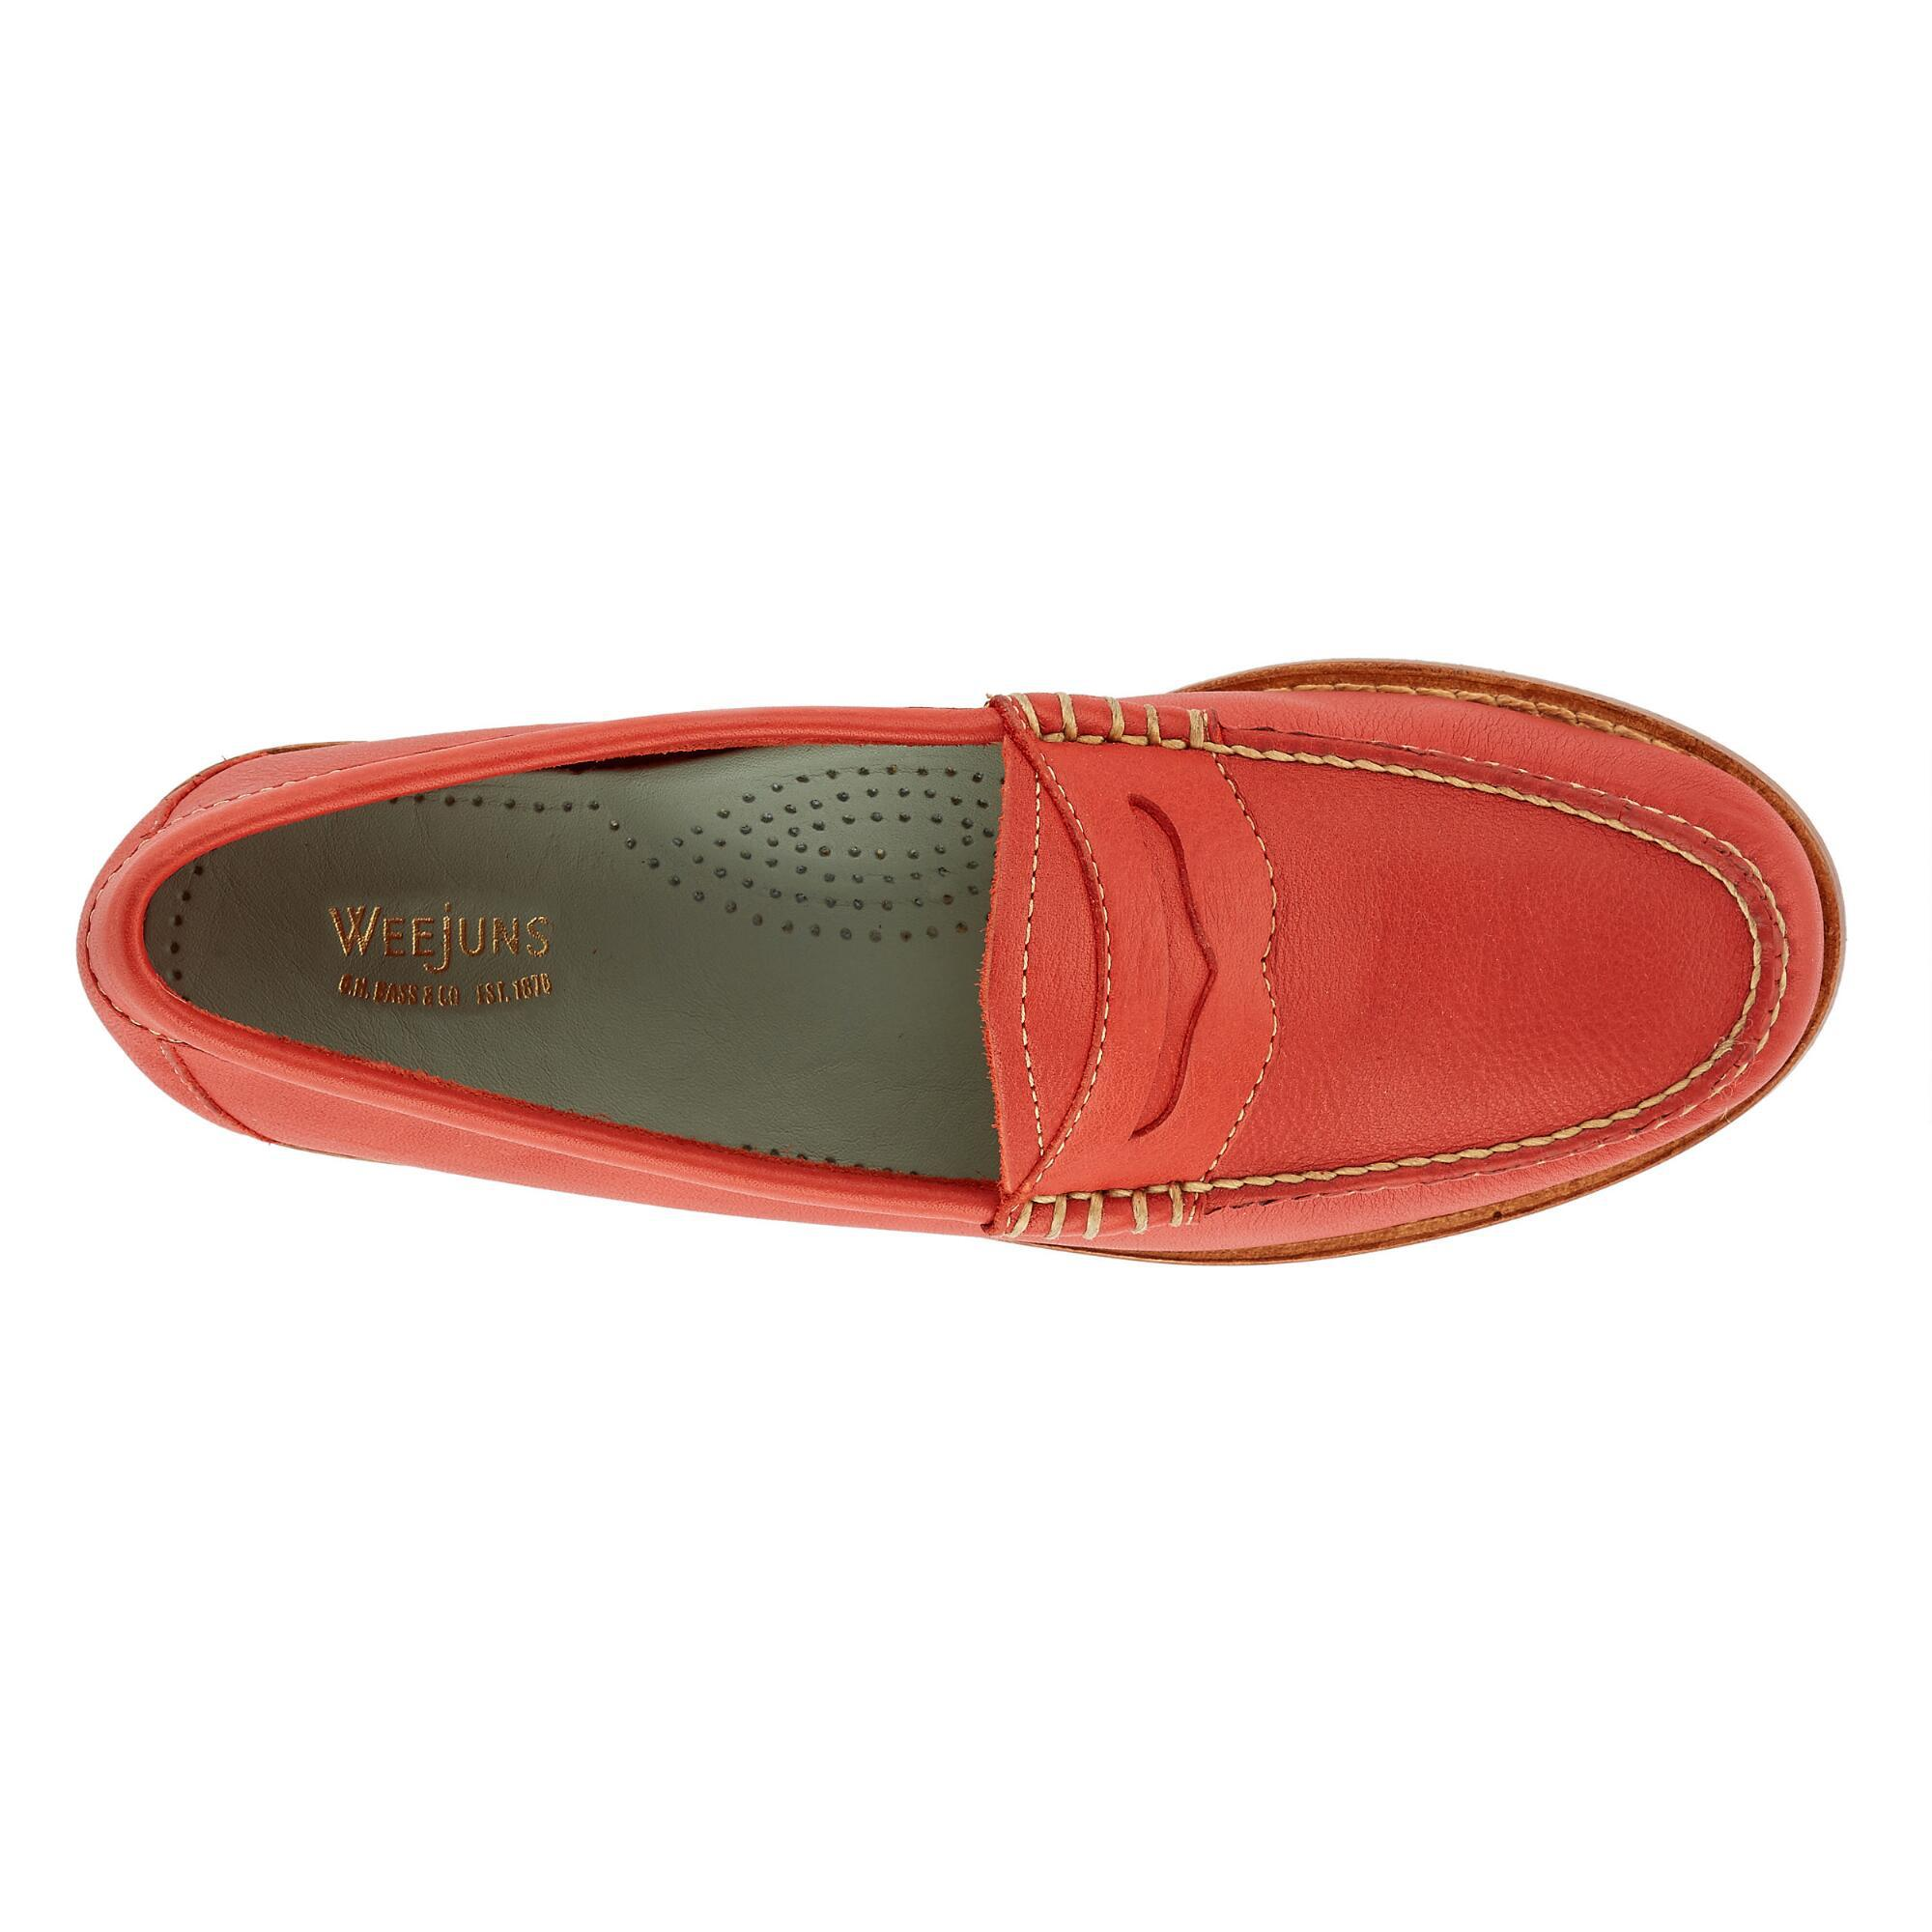 d73a71fc1f6 Lyst - G.H.BASS Whitney Natural Sole Weejuns in Red